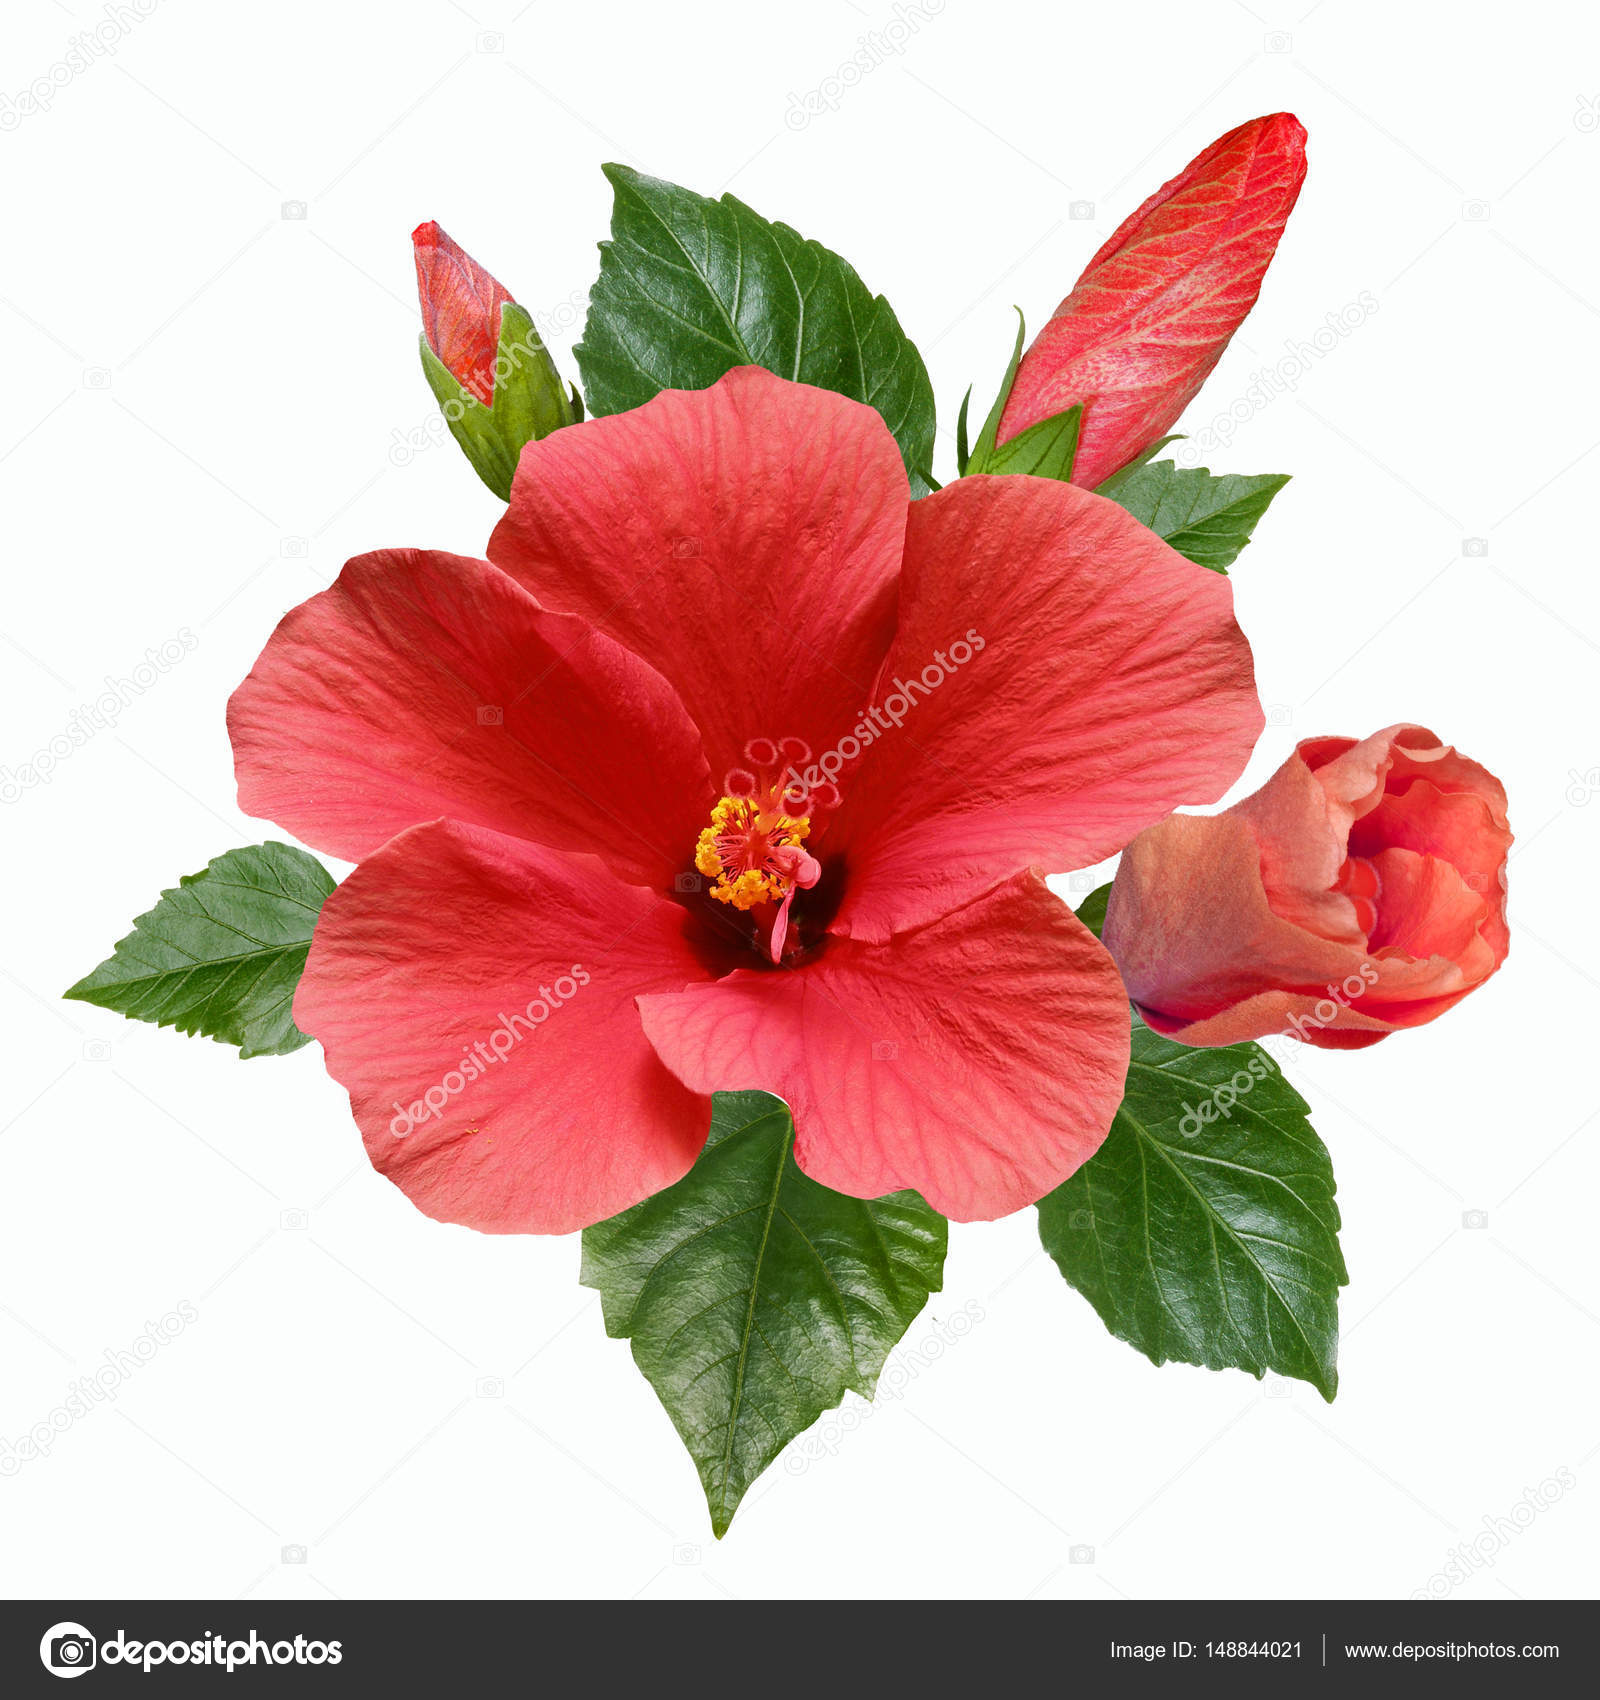 How to use hibiscus leaves flowers for hair growth – hair loss control with Hibiscus How to use hibiscus leaves flowers for hair growth – hair loss control with Hibiscus new pictures